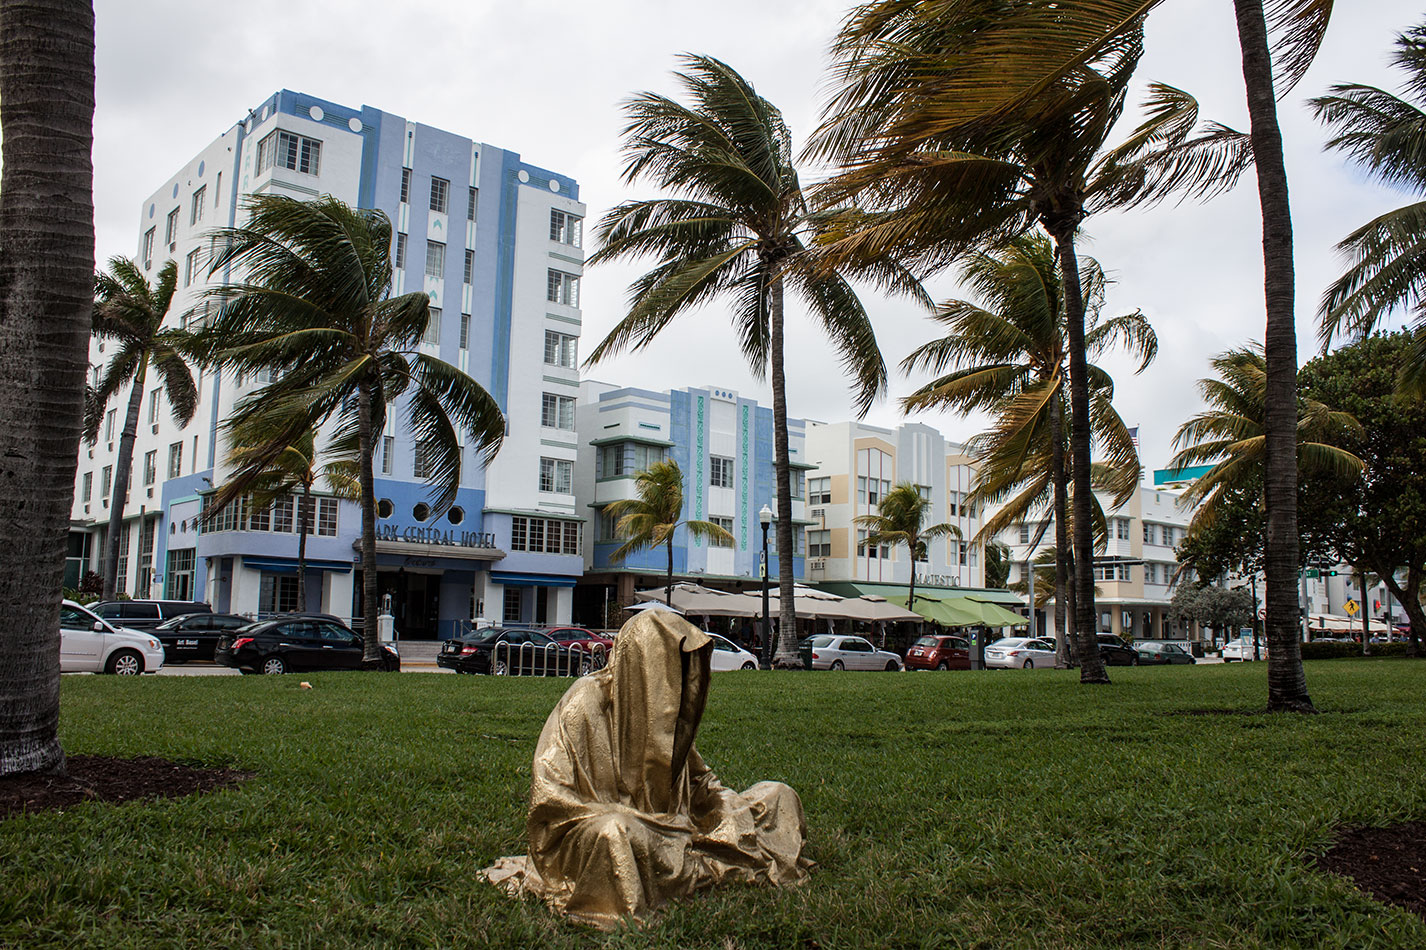 art-basel-miami-beach-fair-usa-florida-guardians-of-time-manfred-kili-kielnhofer-contemporary-fine-art-modern-arts-design-antiques-sculpture-5958